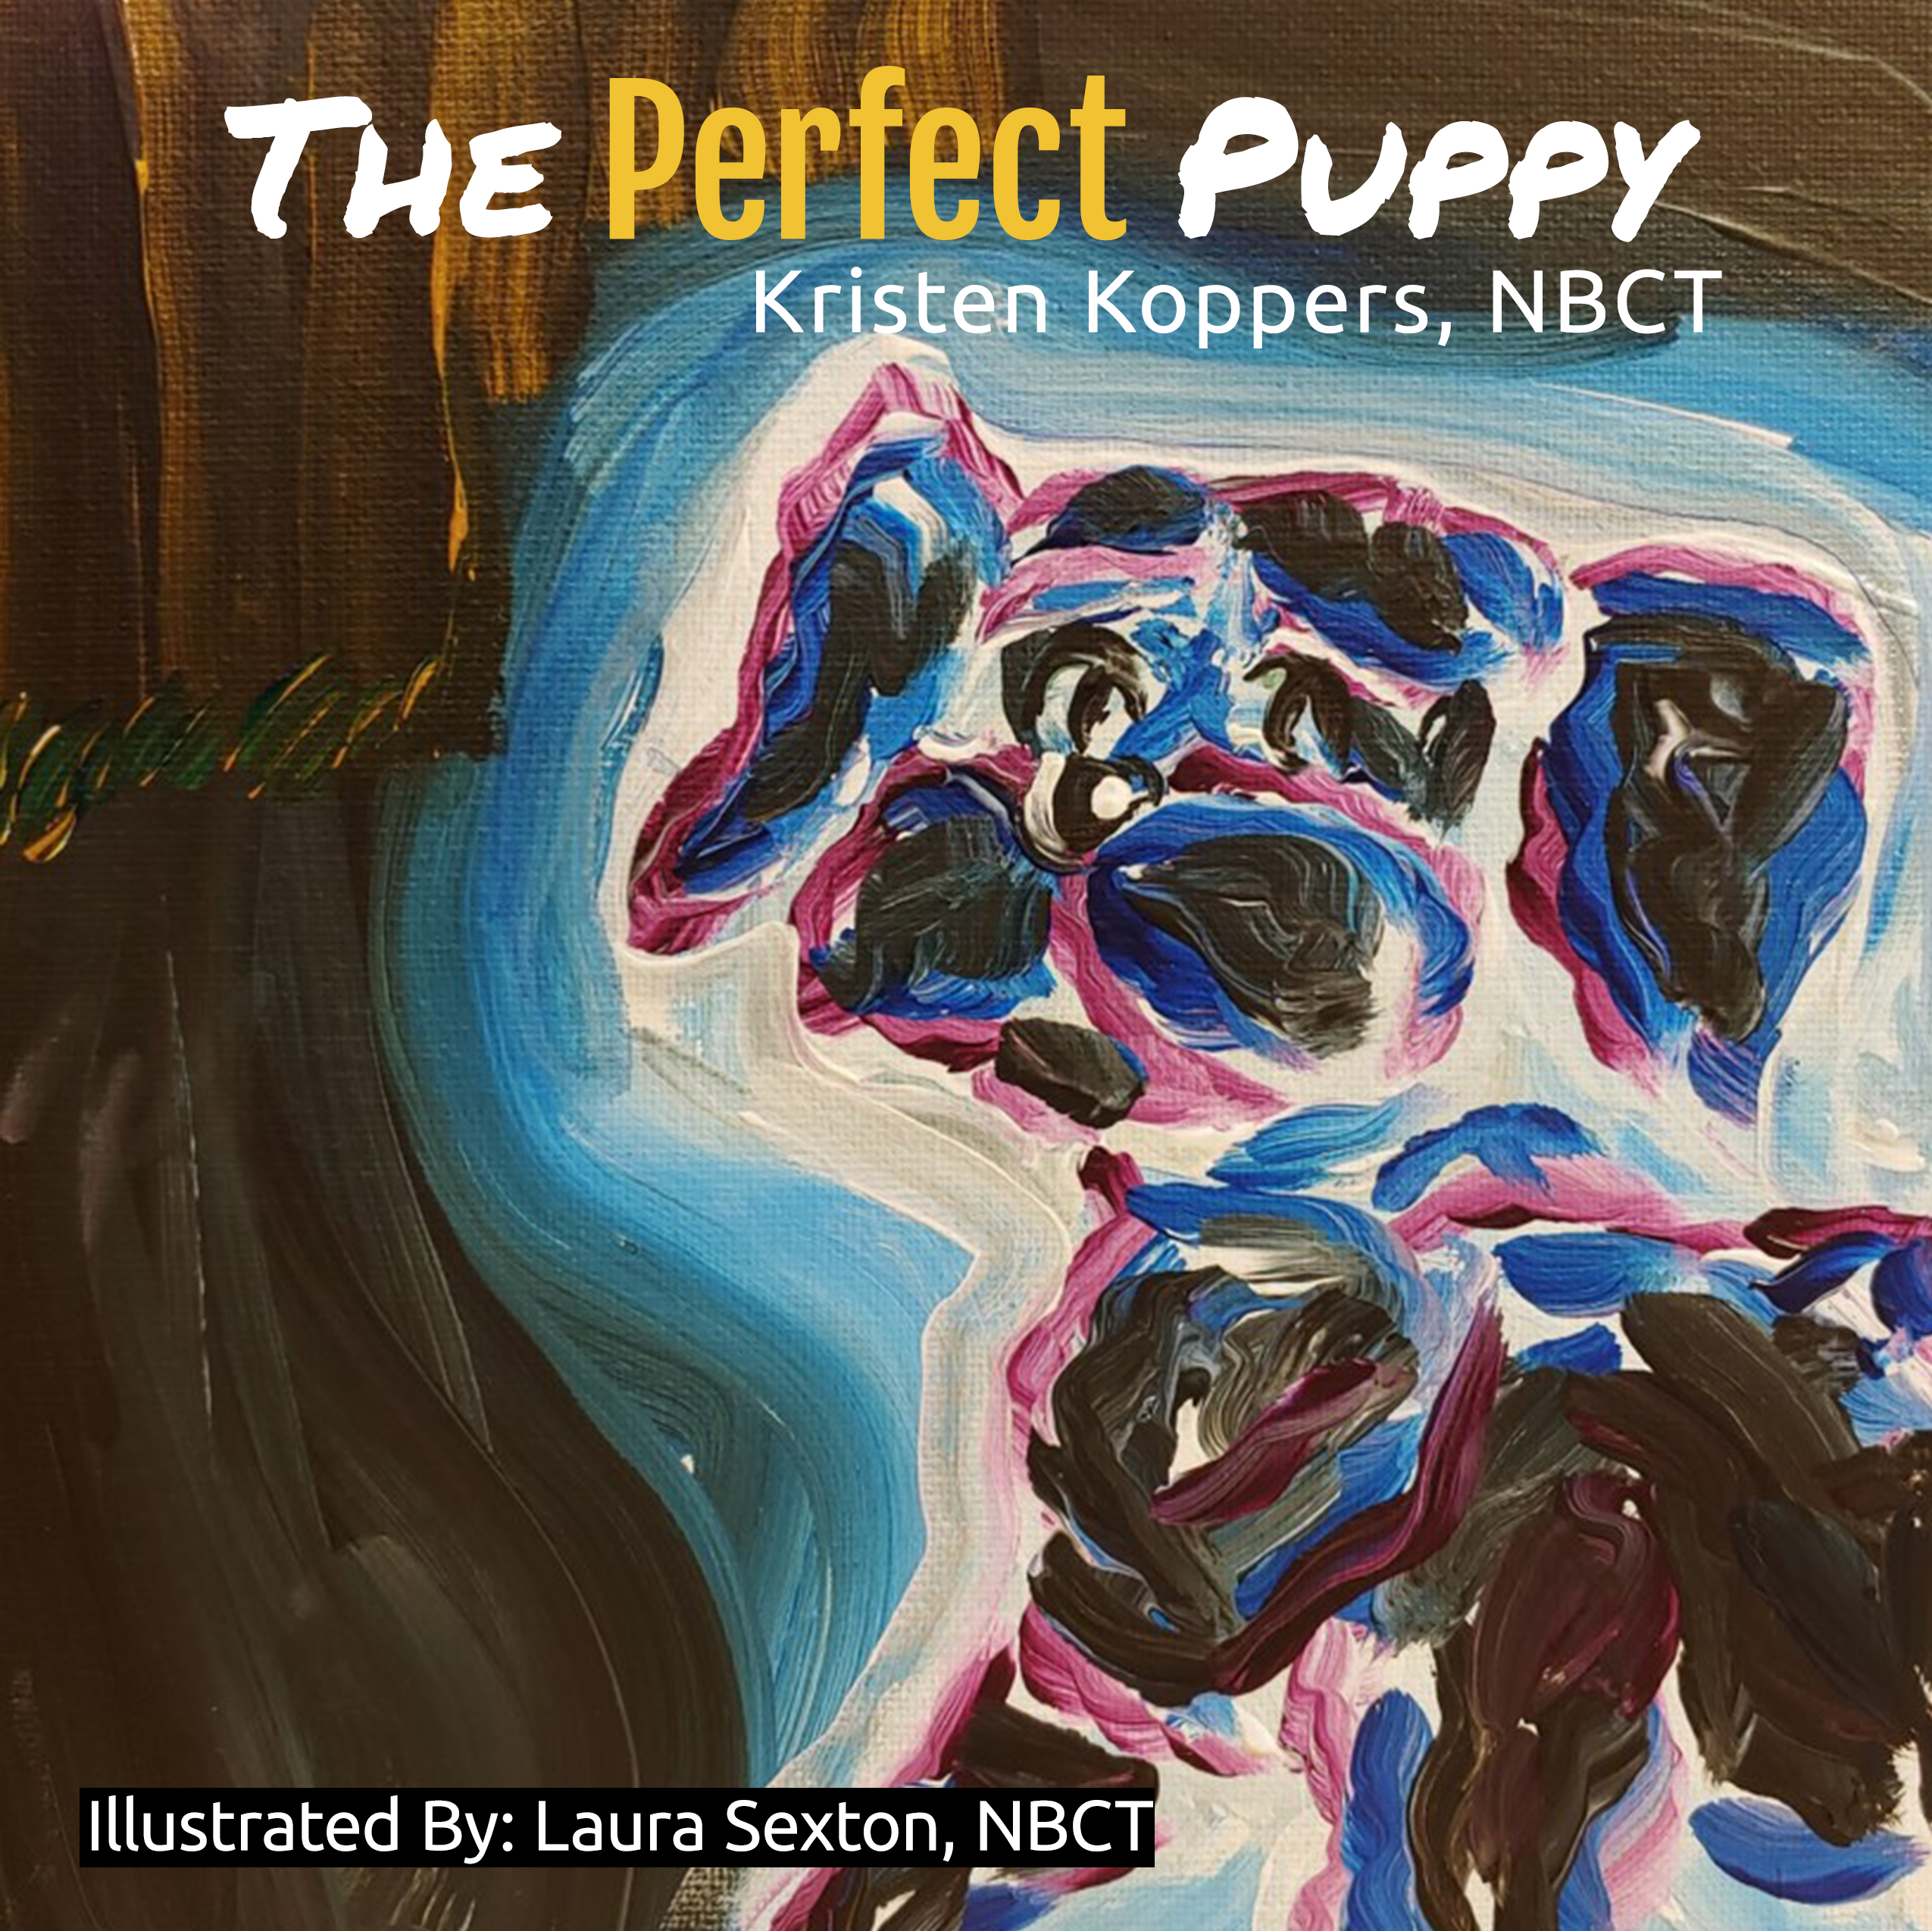 The Perfect Puppy by Kristen Koppers